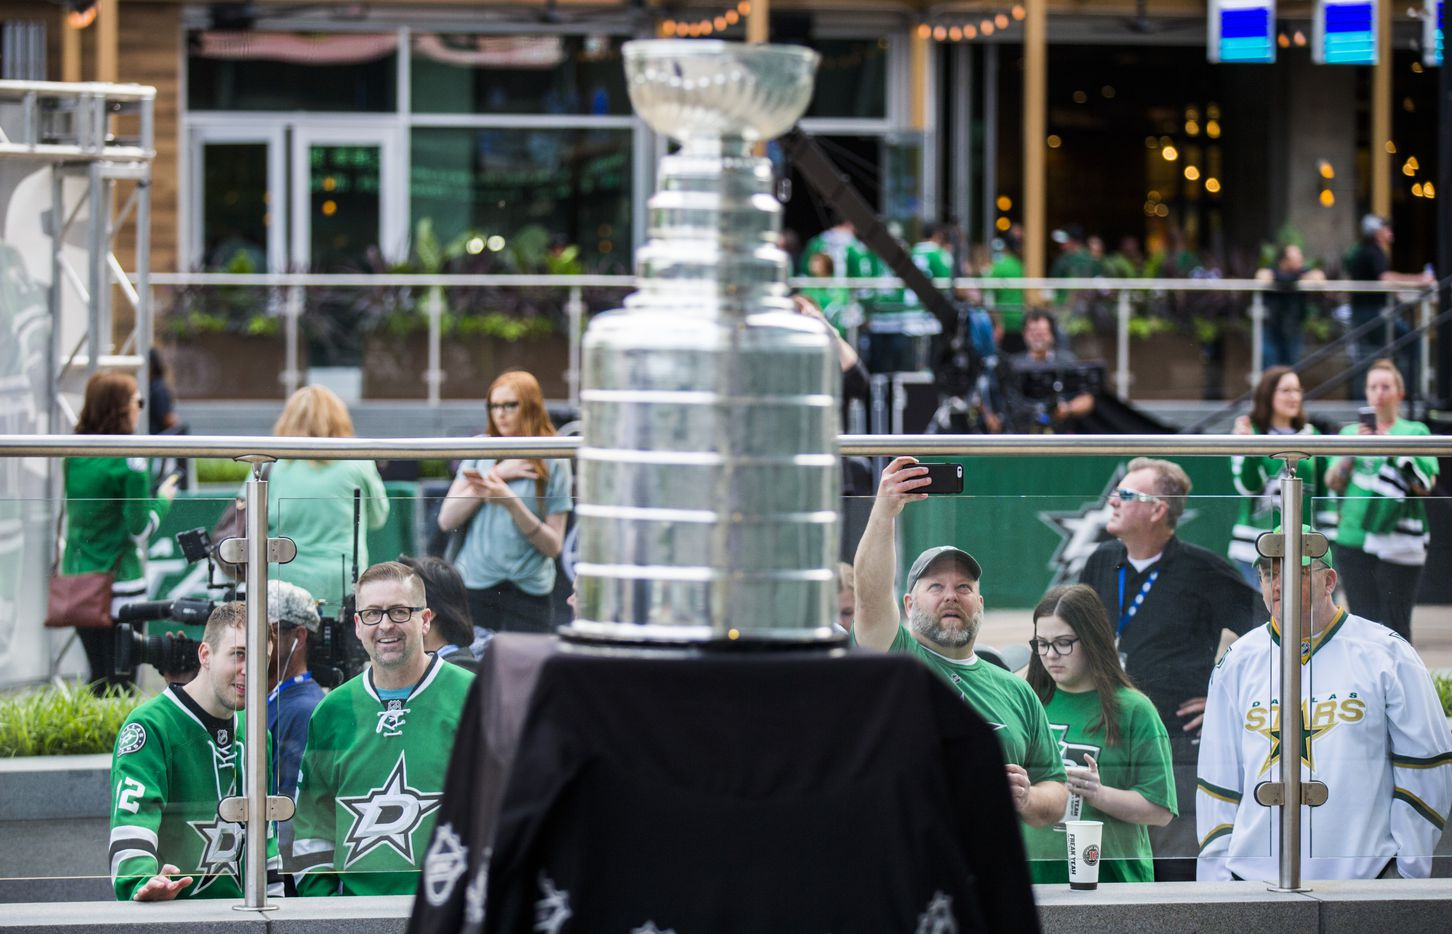 Fans take photos of the Stanley Cup outside American Airlines Center before Game 6 of the first round of the playoffs between Dallas and Nashville.